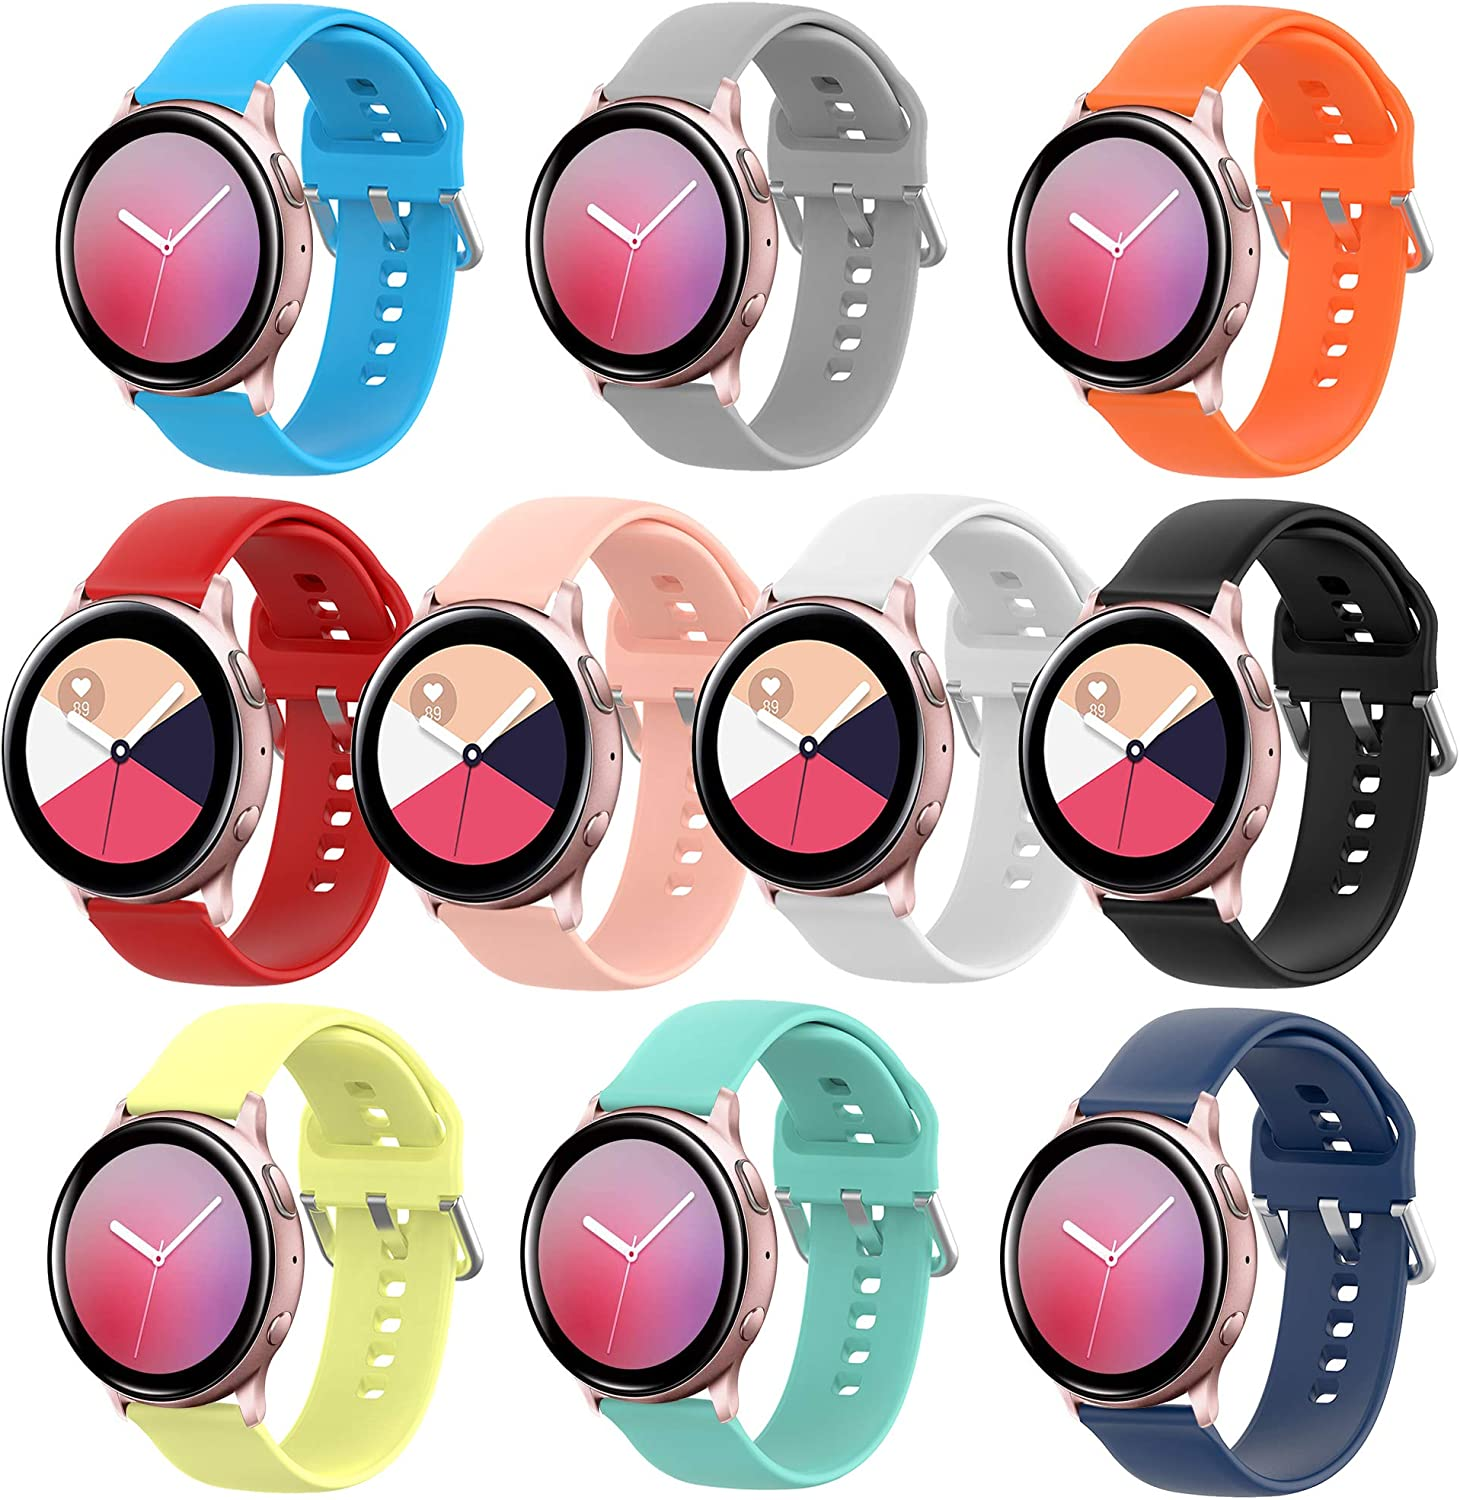 HSWAI 10 Colors Bands Compatible with Samsung Galaxy Watch Active/Galaxy Watch Active 2 (40mm)(44mm)/ Galaxy Watch 3 41mm/ Galaxy Watch 42mm, 20mm Soft Silicone Sport Strap with Quick Release